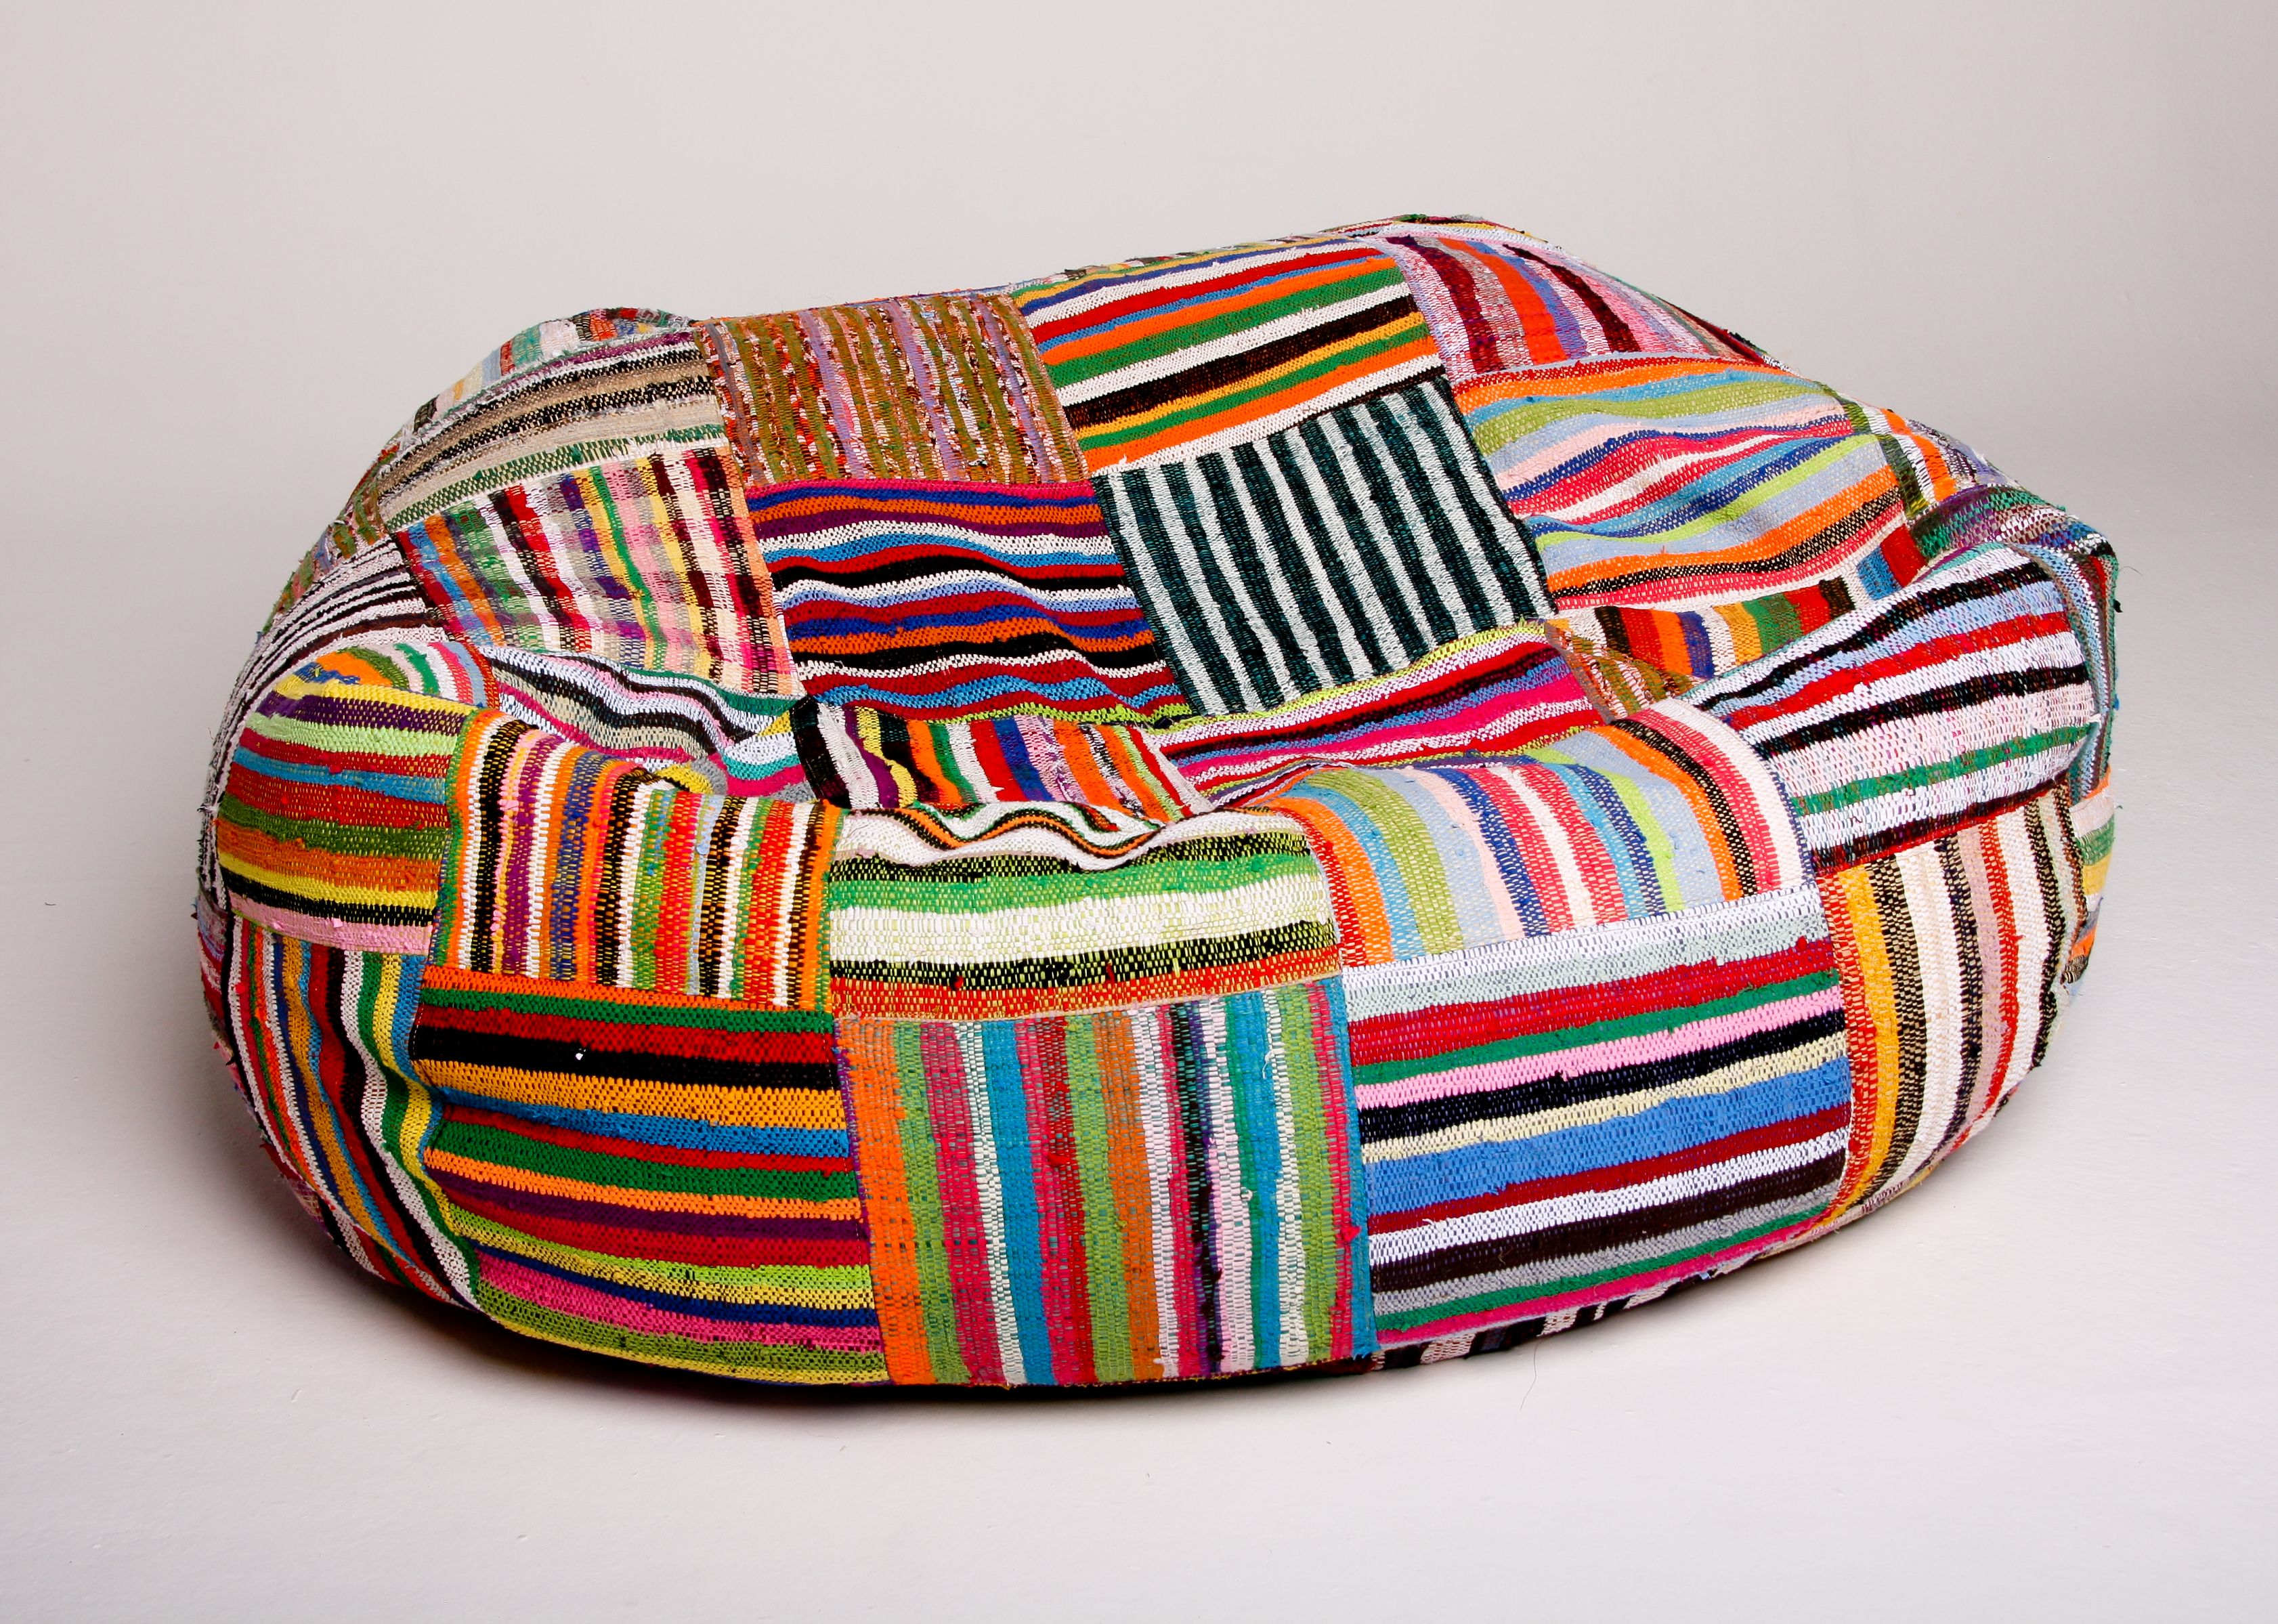 Excellent Tzoro Bean Bag Material Cotton Raffia Ashanti In 2019 Caraccident5 Cool Chair Designs And Ideas Caraccident5Info